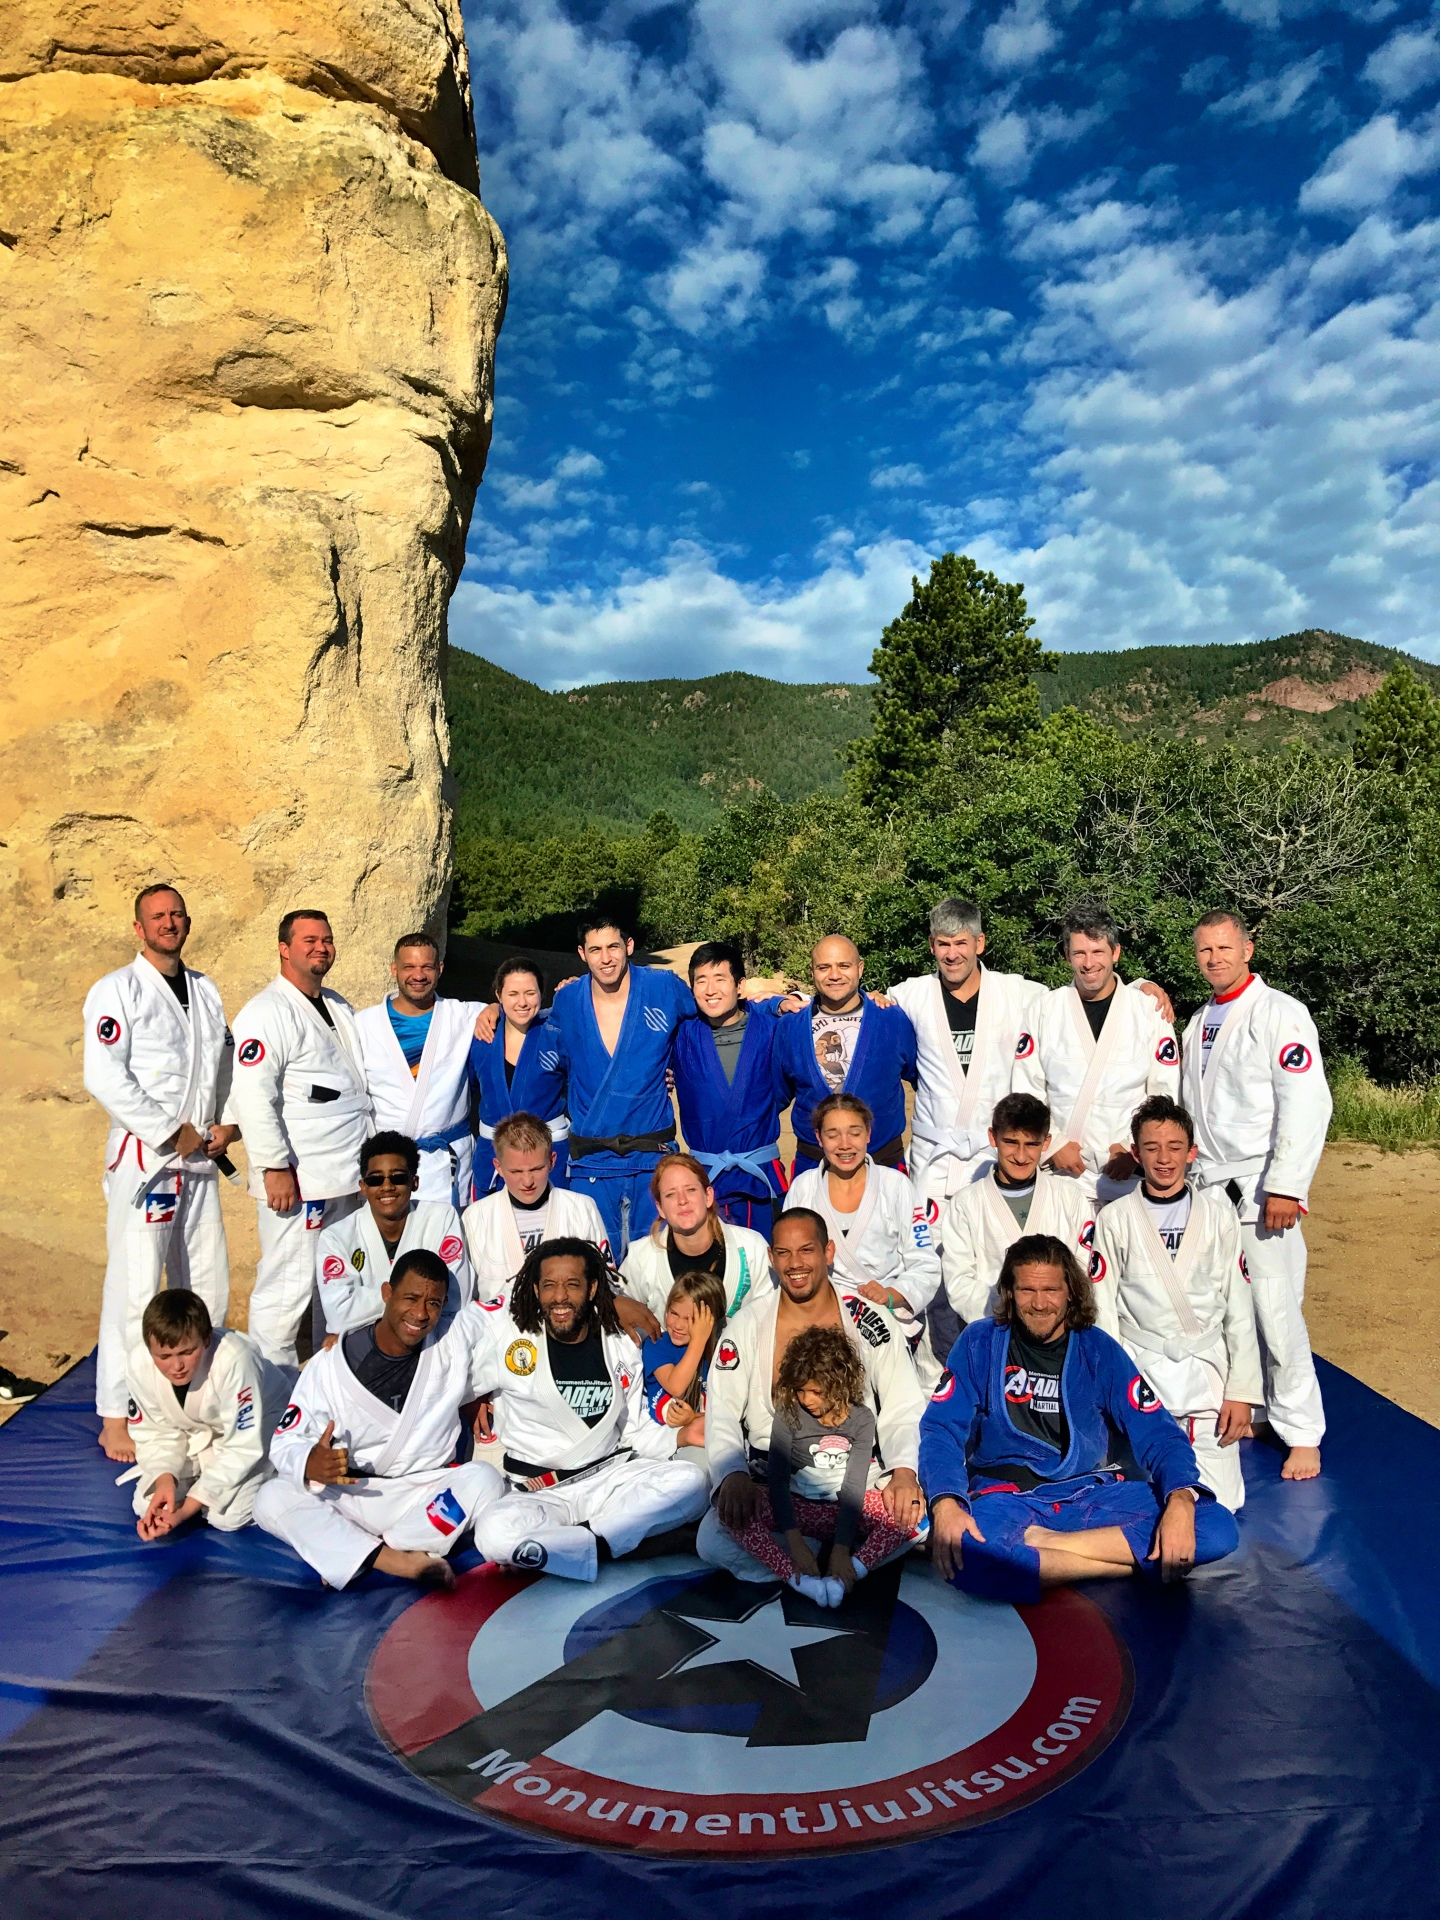 BJJ at Monument Rock